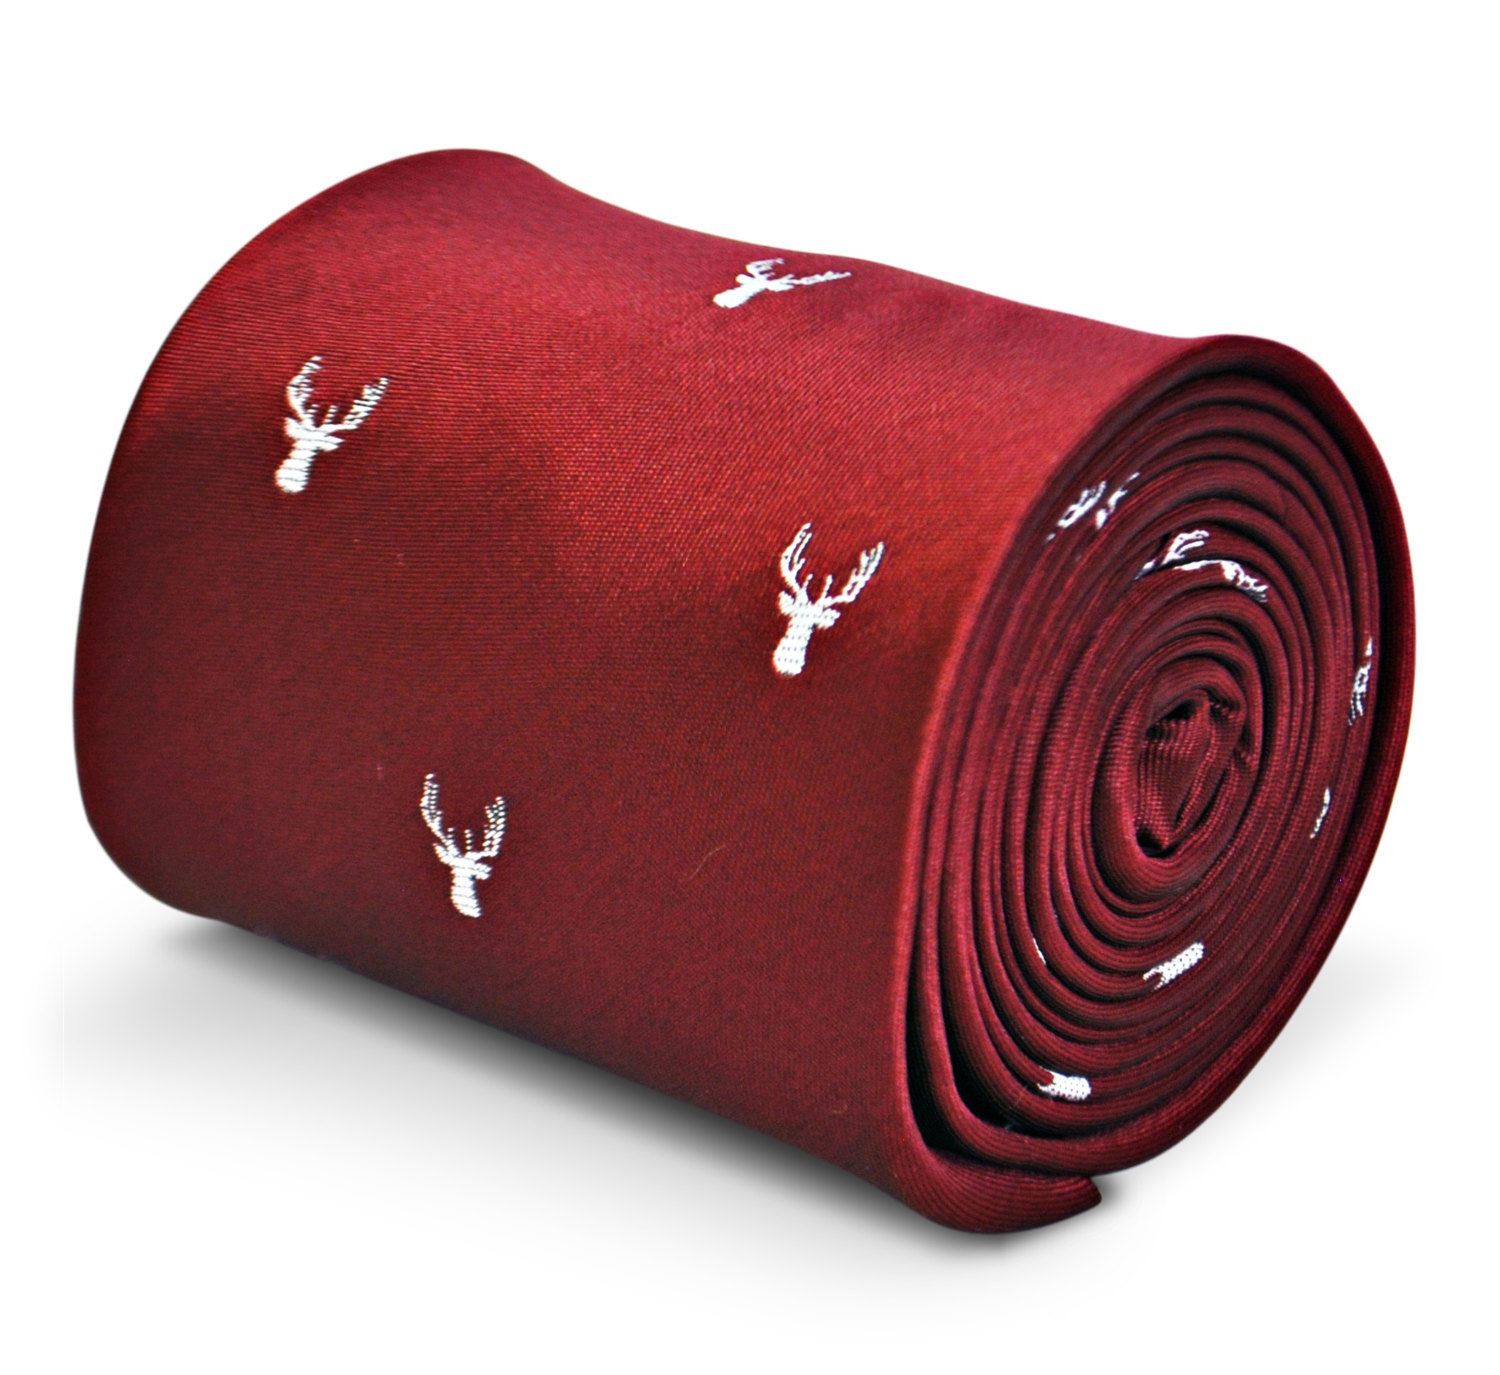 burgundy maroon tie with white deer head design with signature floral design to